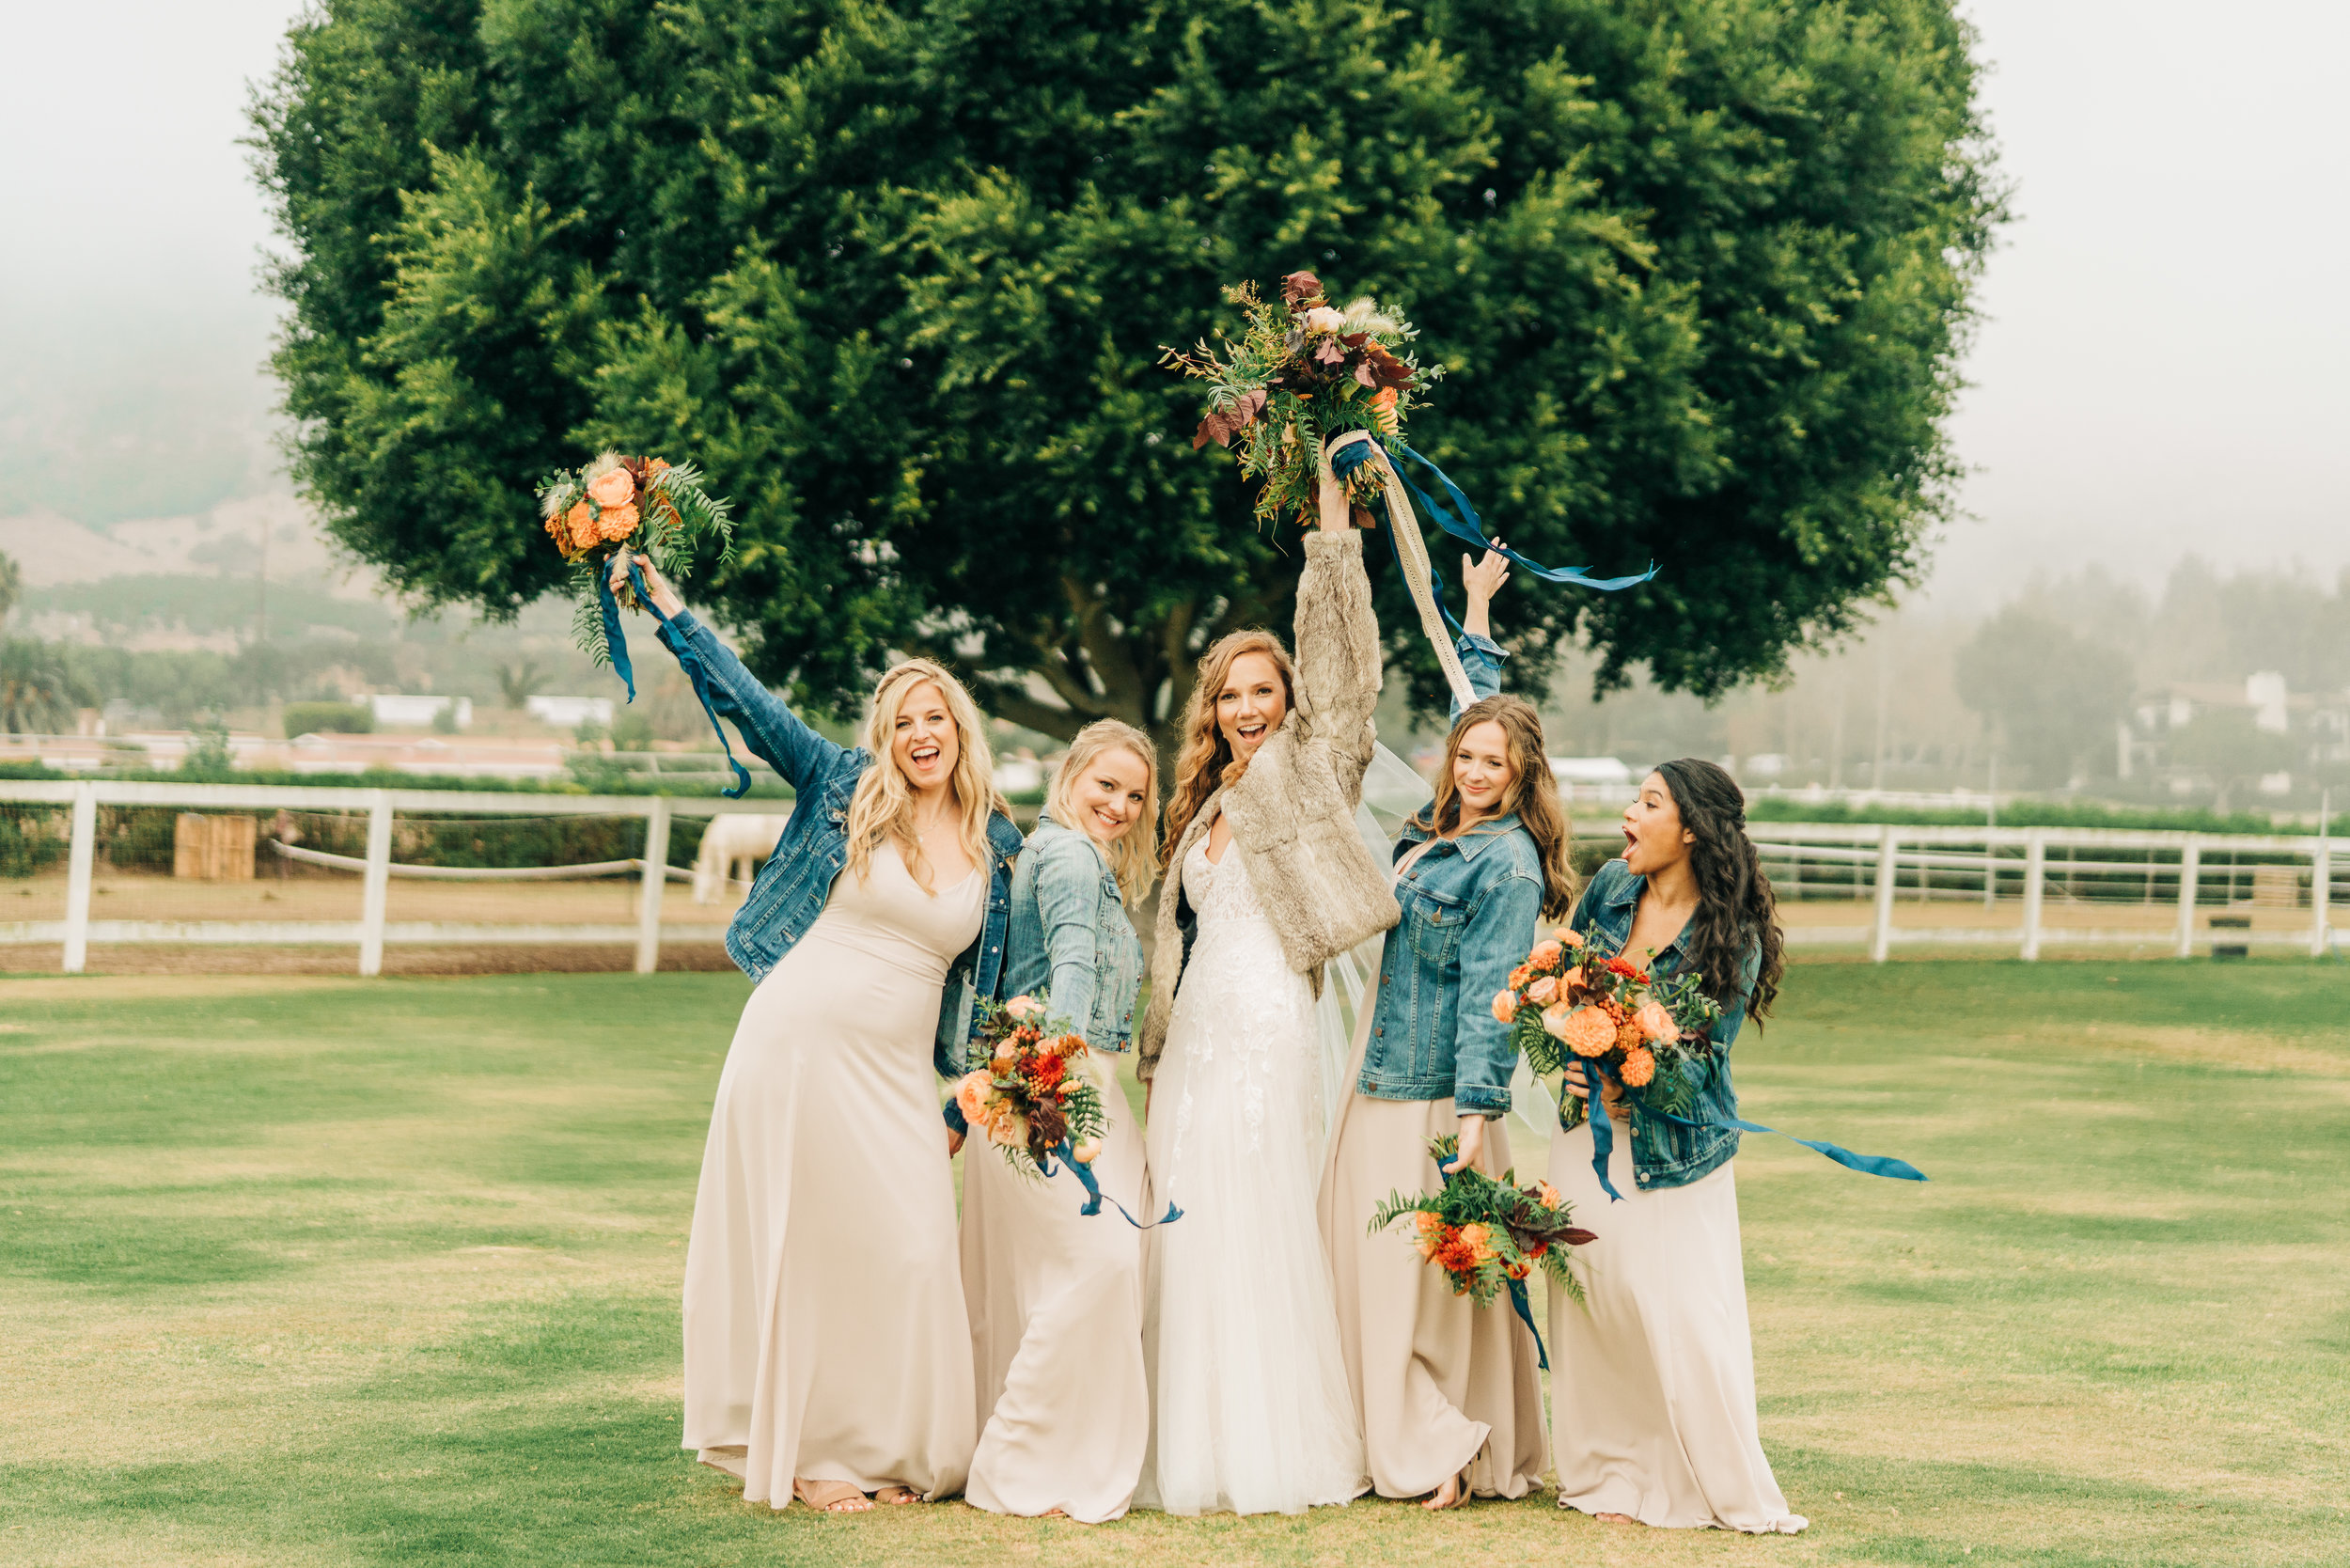 www.santabarbarawedding.com | Brandon Bibbins Photography | The Cottages at Polo Run | Lucy Salgado | Bridesmaids Celebrate